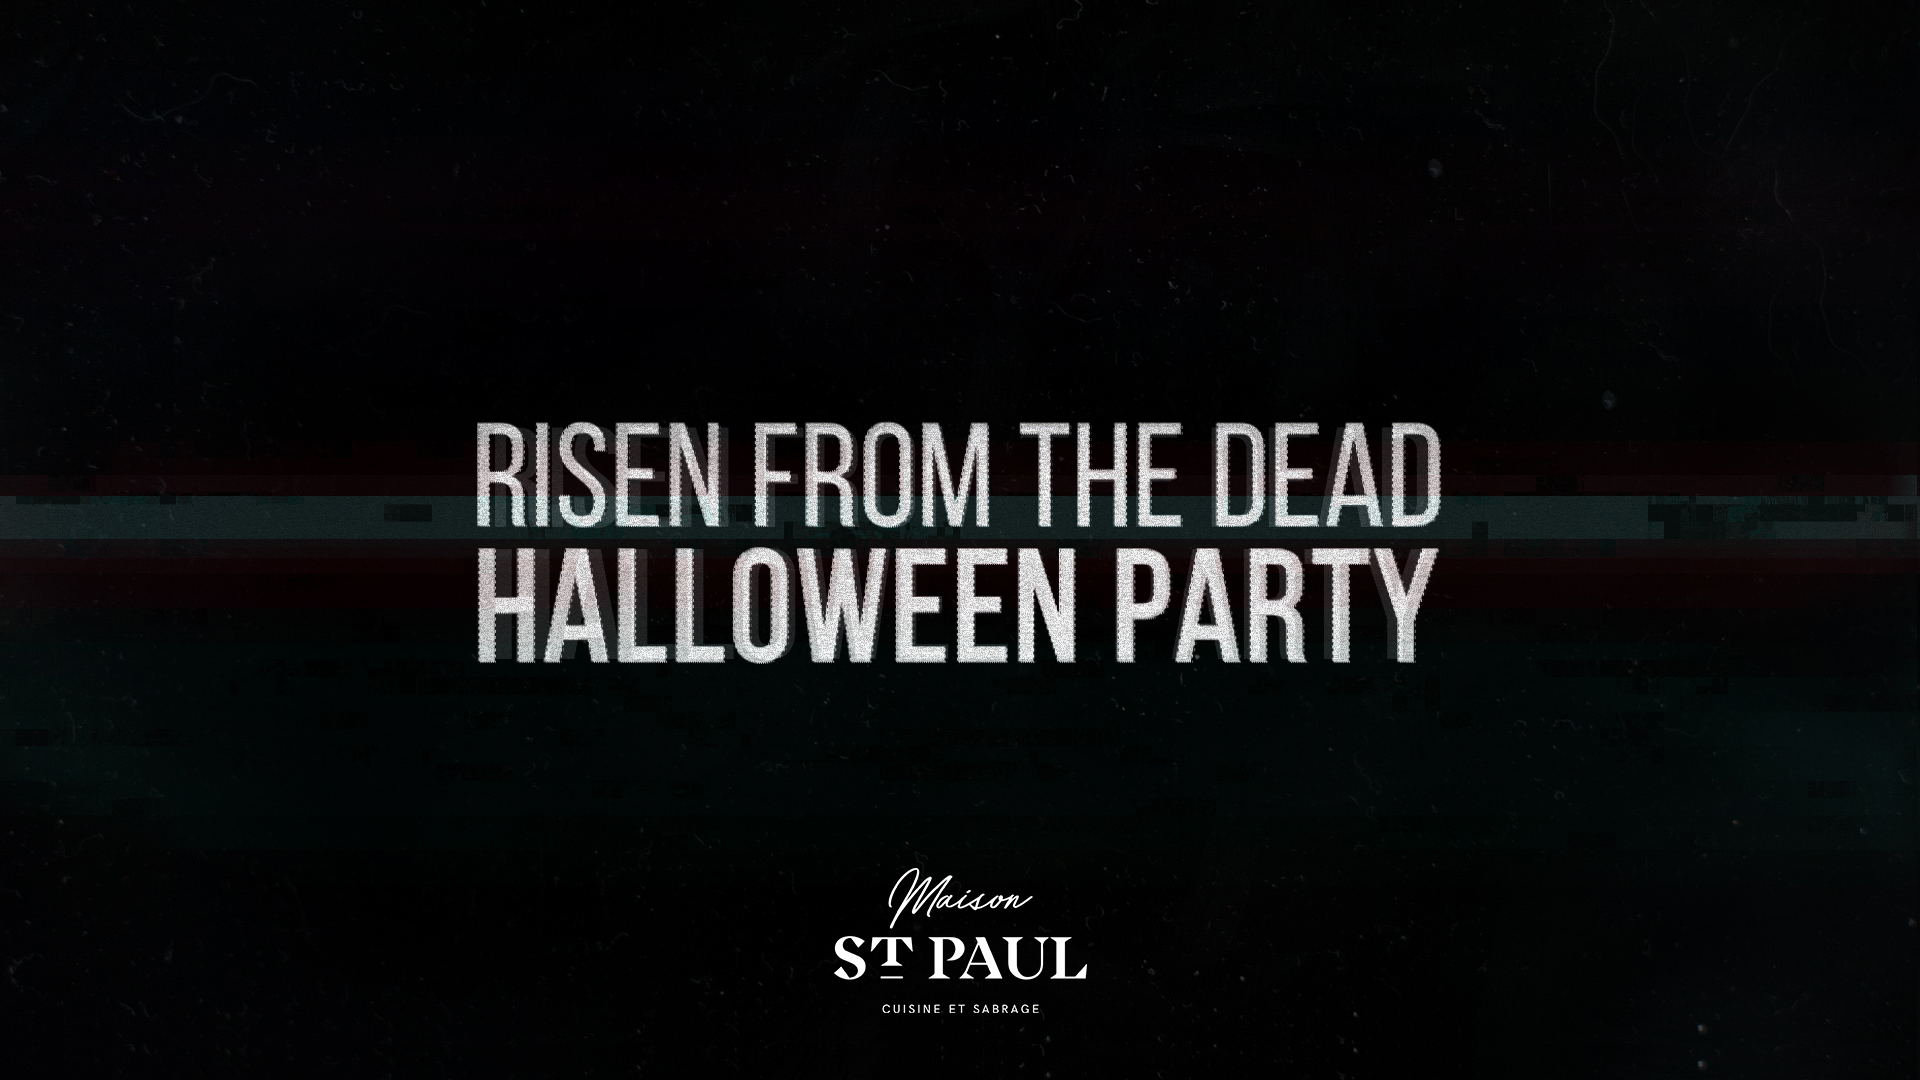 Risen from the Dead Halloween Party